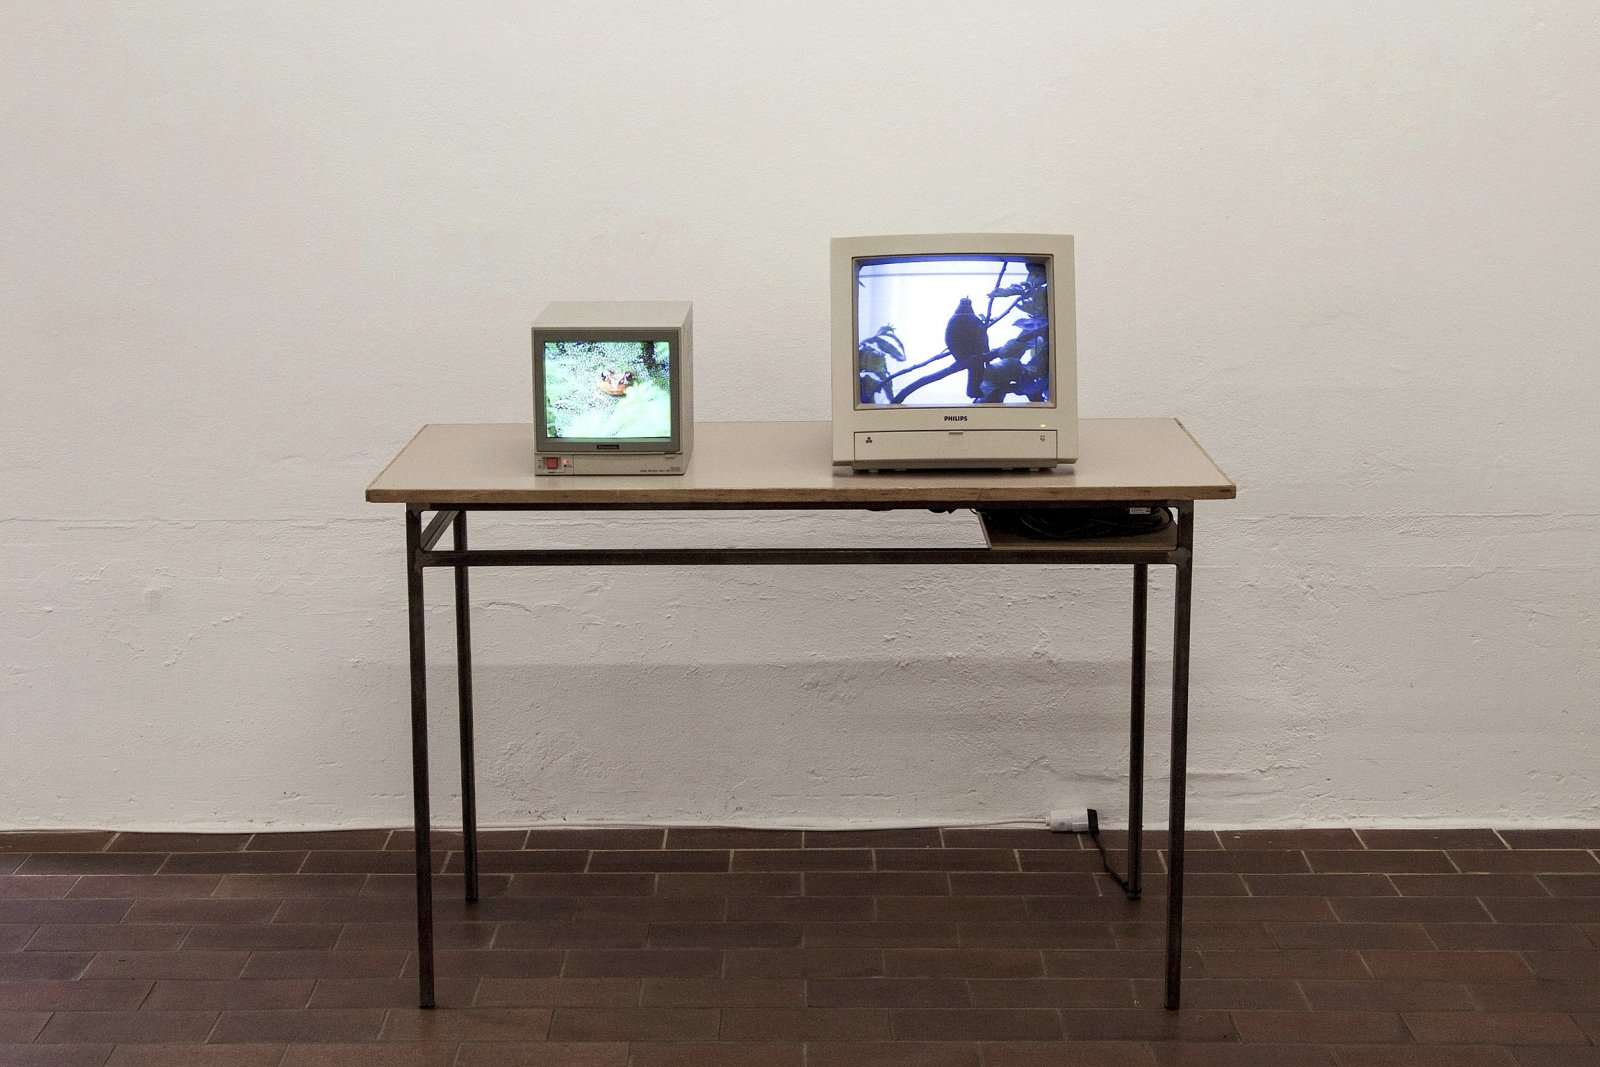 ​​​Christina Mackie, Frog and Bird, 2000, table, media players, CRT monitors, loop 19 minutes, 29 seconds. Installation view, ​And Bird, PRAXES, Berlin, 2014​​ by Christina Mackie